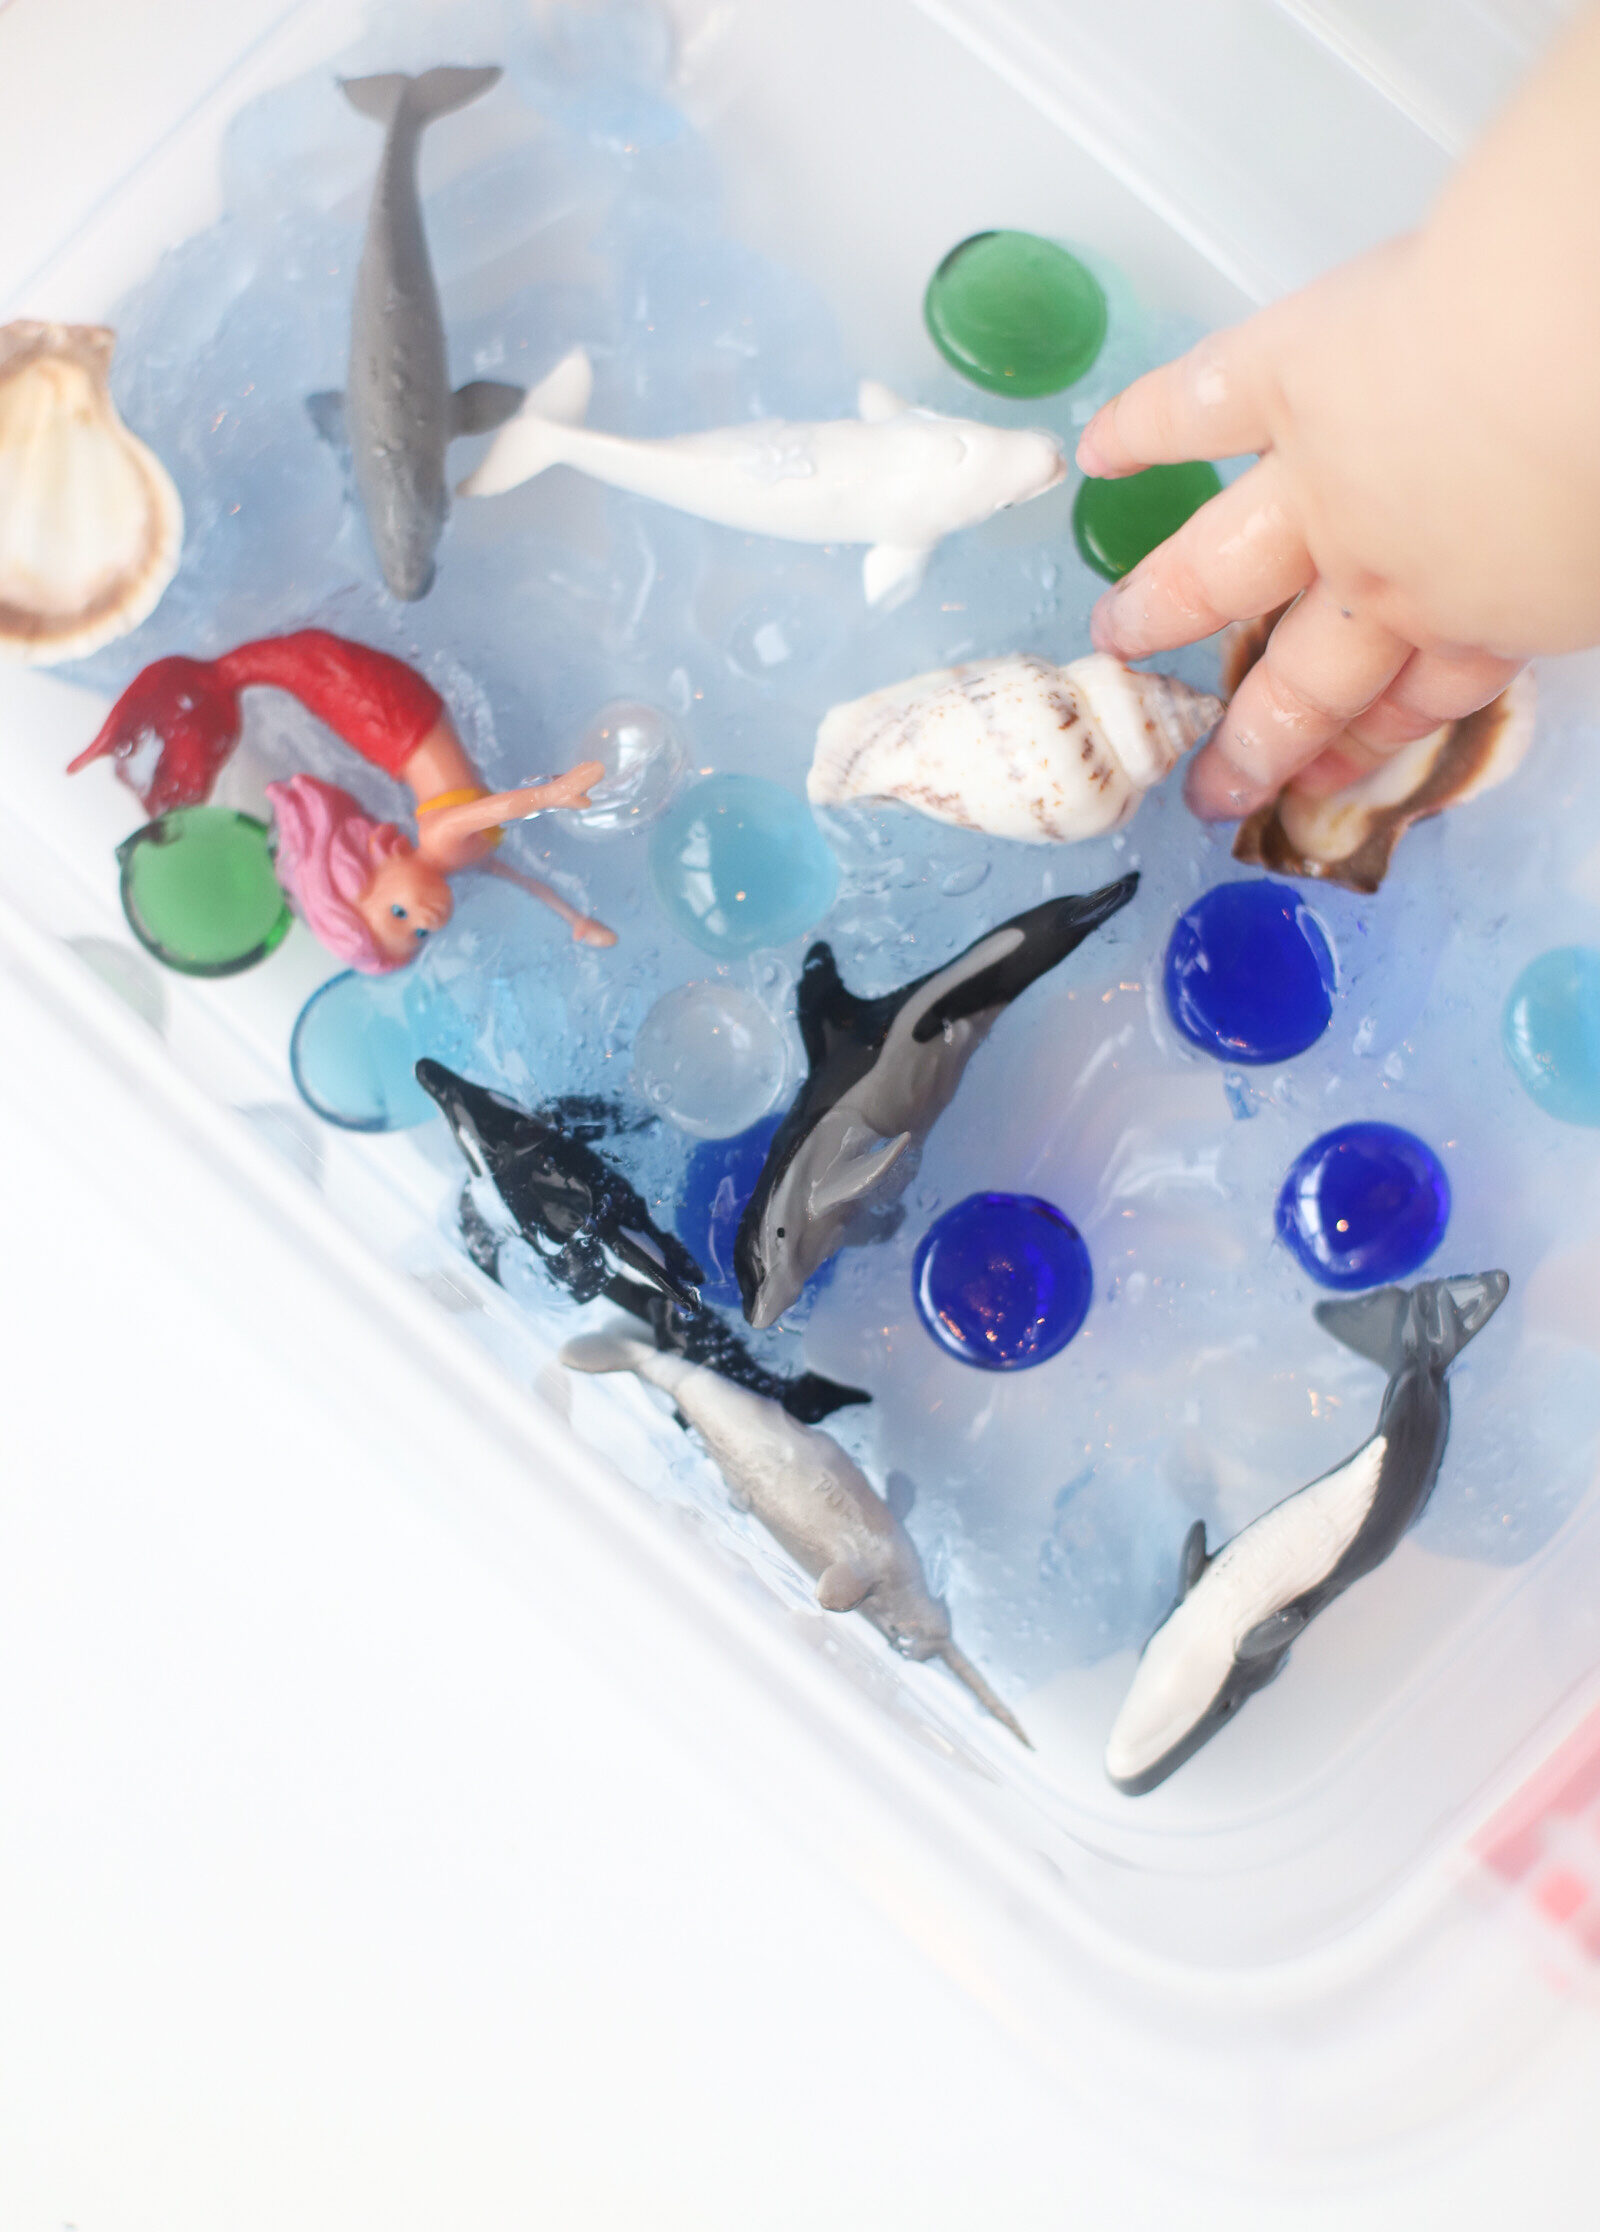 Home with your young kids? Here is a huge list of fun and educational activities to do at home with young kids, including exactly how to entertain your children during school closures, cold and flu days, Spring and Summer vacation breaks, and more. | glitterinc.com | @glitterinc // Make your kids an Easy and Fun Kids Ocean Sensory Bin Activity with inexpensive items and watch their imaginations run wild! Plus, a no mess option, and how to store and re-use the DIY ocean sensory bin again and again. This craft is a perfect learning activity for toddlers, preschools, kindergarteners, and beyond!